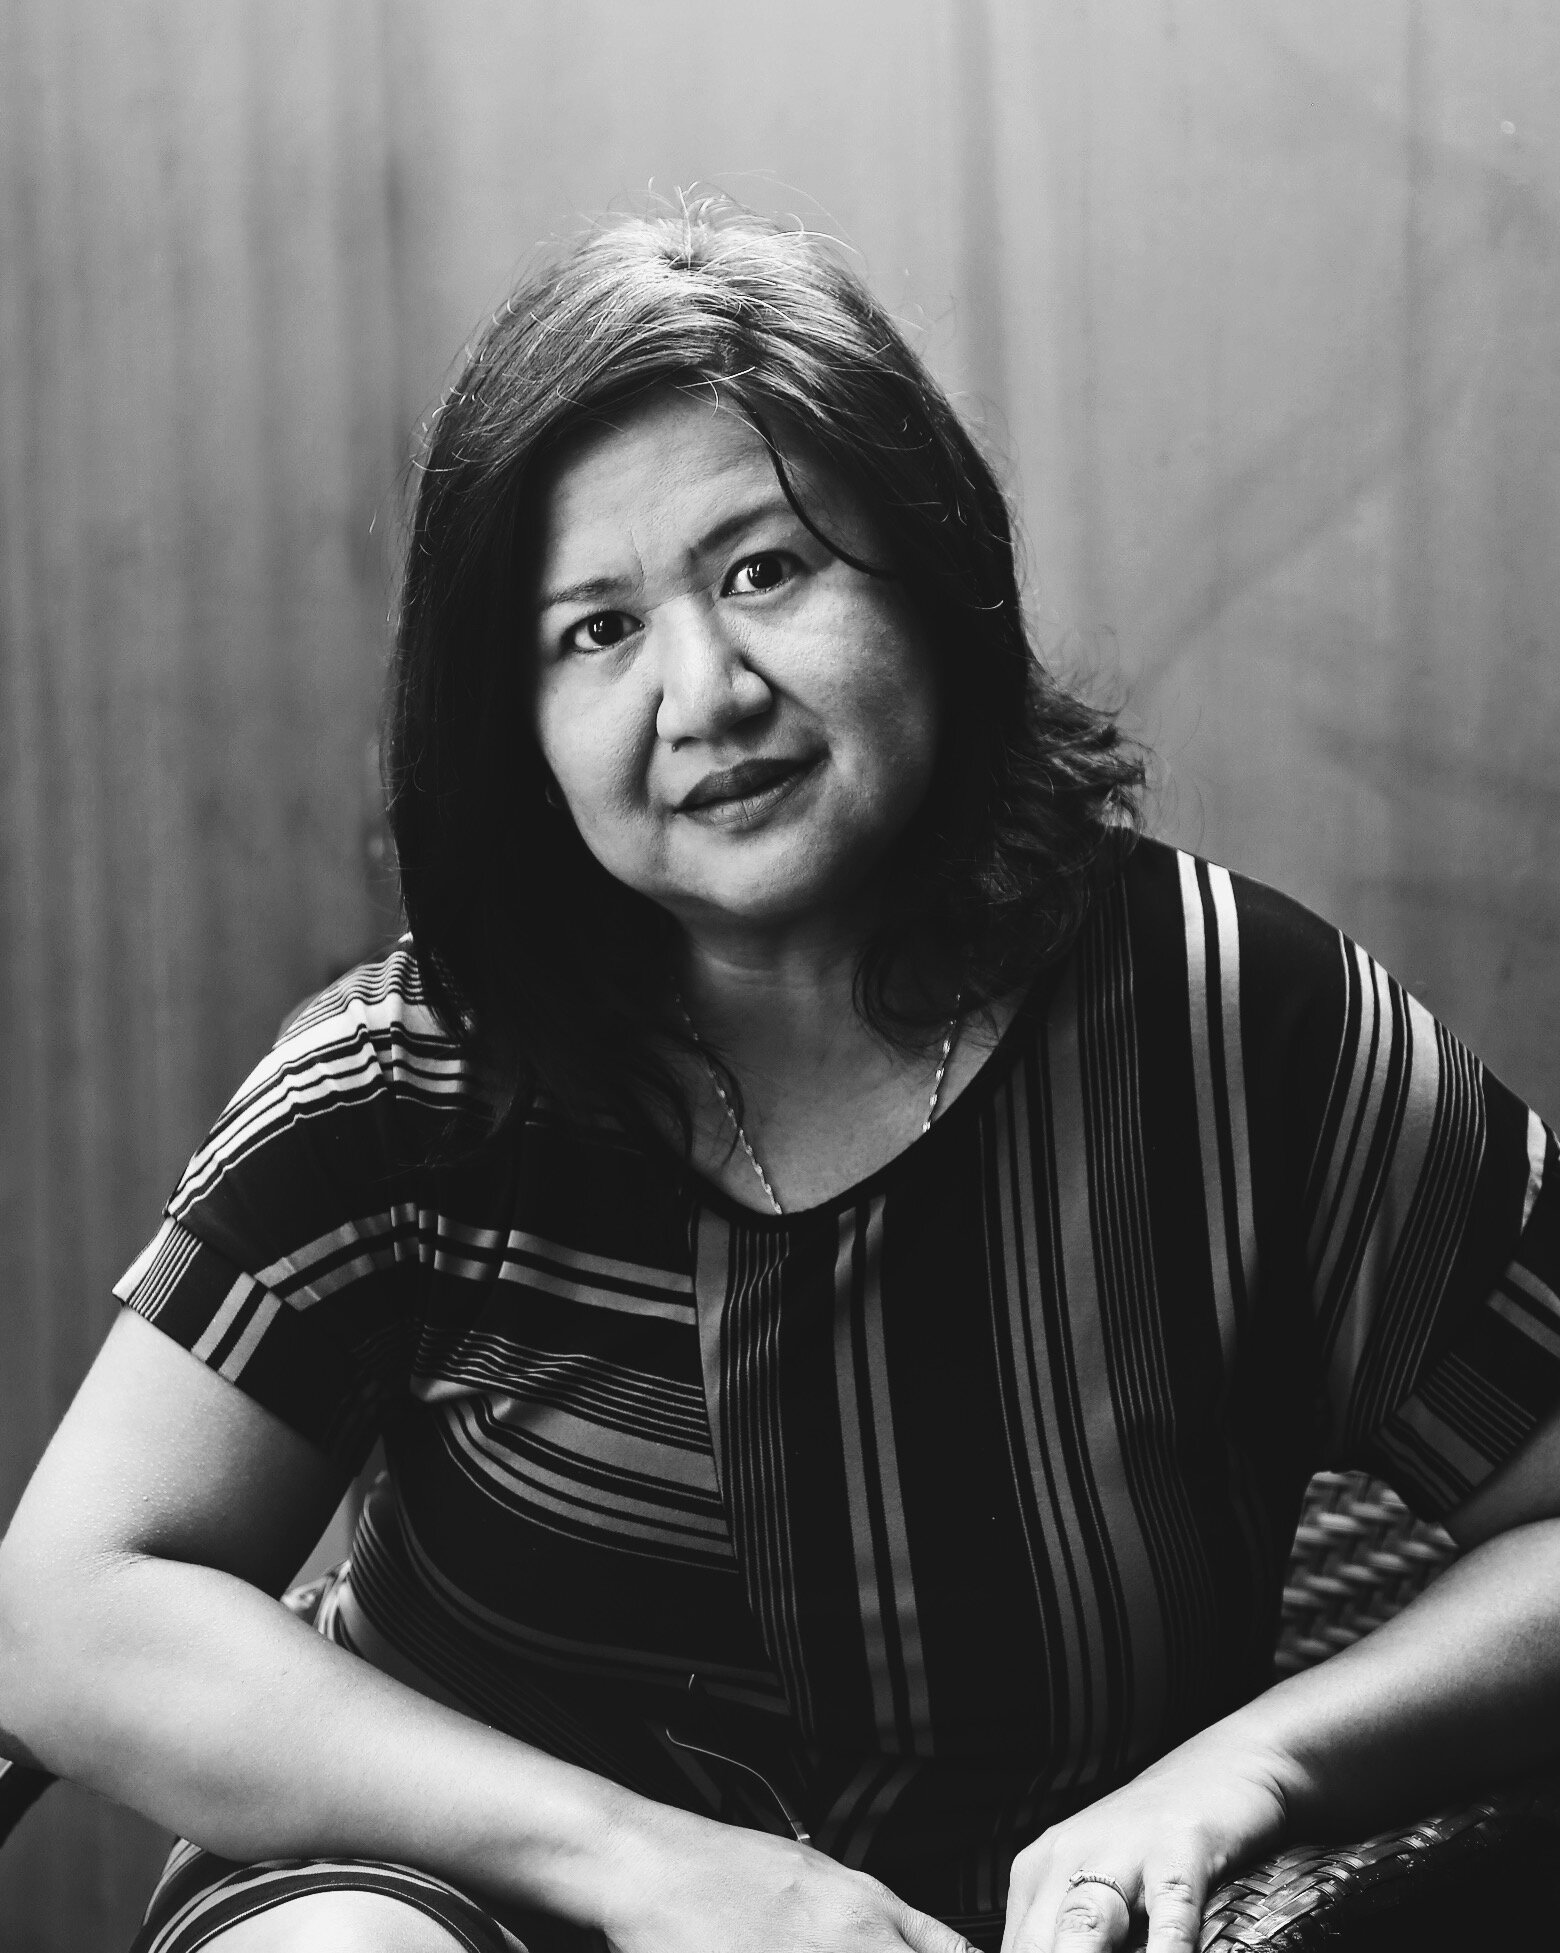 Writer and freelance copyeditor  Noelle Q. de Jesus  has lived in Singapore as a permanent resident since 2000. She is the author of  BLOOD Collected Stories  (Ethos Books Singapore 2015), an award-winning collection of short fiction with a forthcoming translation in French, and the chick lit novel  Mrs MisMarriage  (Marshall Cavendish International 2008). She edited edited the flash fiction anthology series,  Fast Food Fiction Short Short Stories to Go  and  Fast Food Fiction Delivery ( Anvil Publishing Philippines 2003, 2015).  Penguin Random House Southeast Asia is publishing her second book of short fiction,   Cursed and Other Stories   .  She will be working on her novel,  Another Immense Sky , and prepare it for publication, as well as begin a creative non-fiction book project about life lessons from tennis.